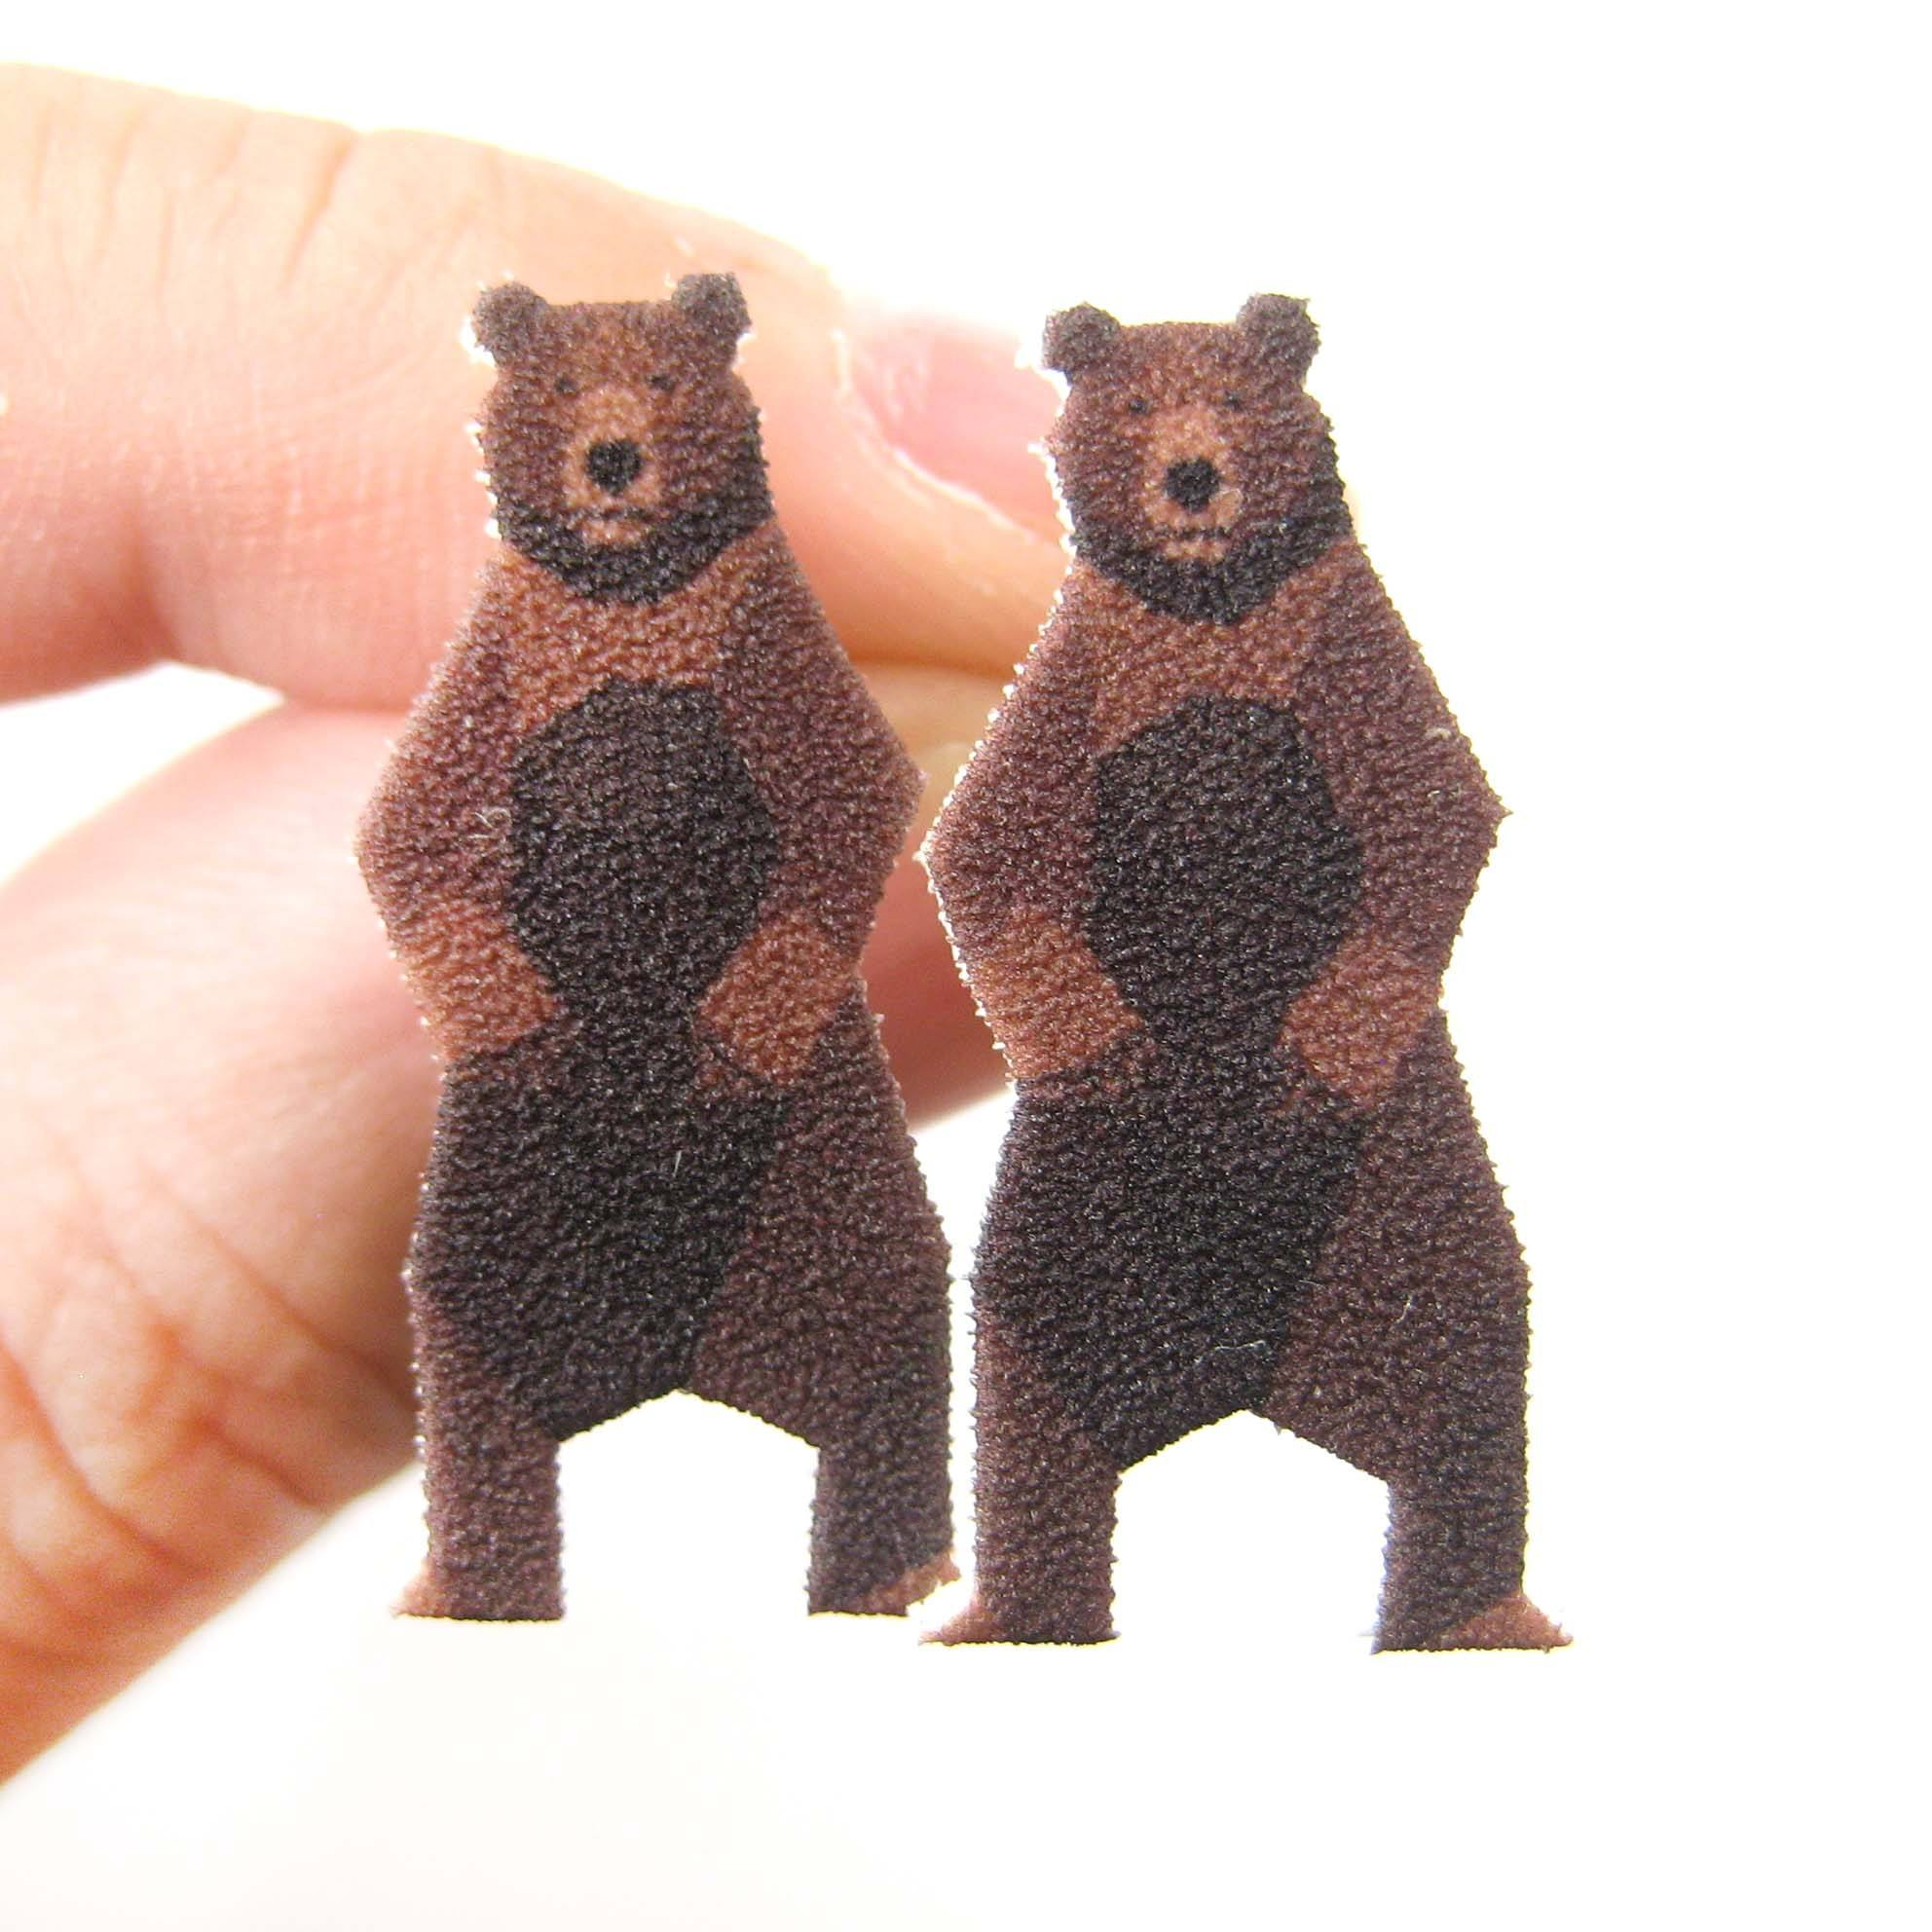 brown-bear-animal-illustration-stud-earrings-handmade-shrink-plastic